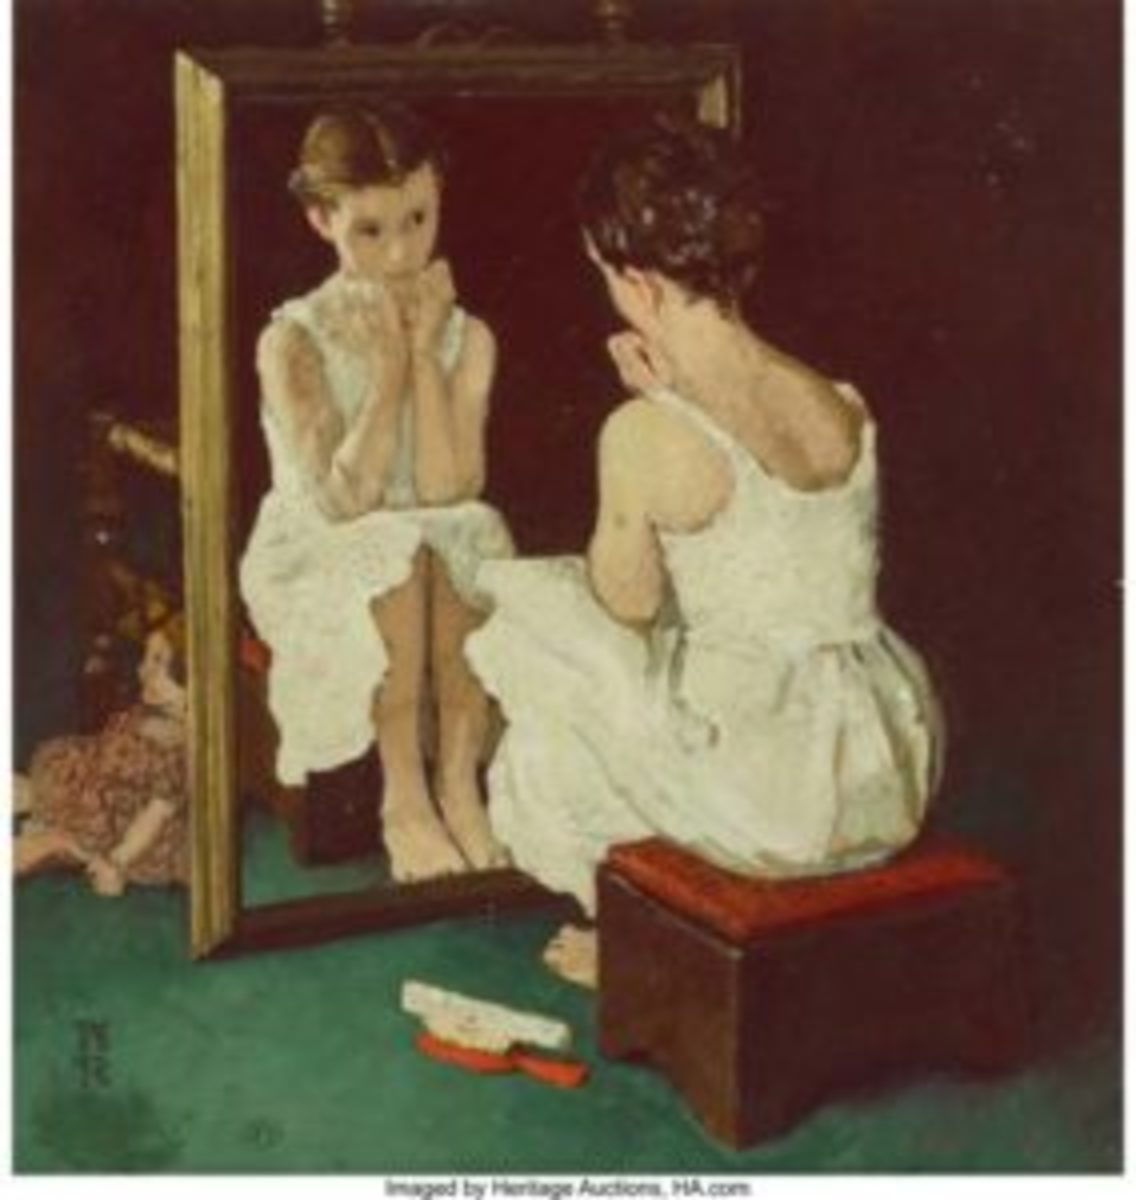 Norman Rockwell (American, 1894-1978), Girl at Mirror, The Saturday Evening Post cover study, 1954, oil on photographic paper laid on board, 10-1/8 x 10-1/2 inches, initialed lower left:N/R, $399,000.